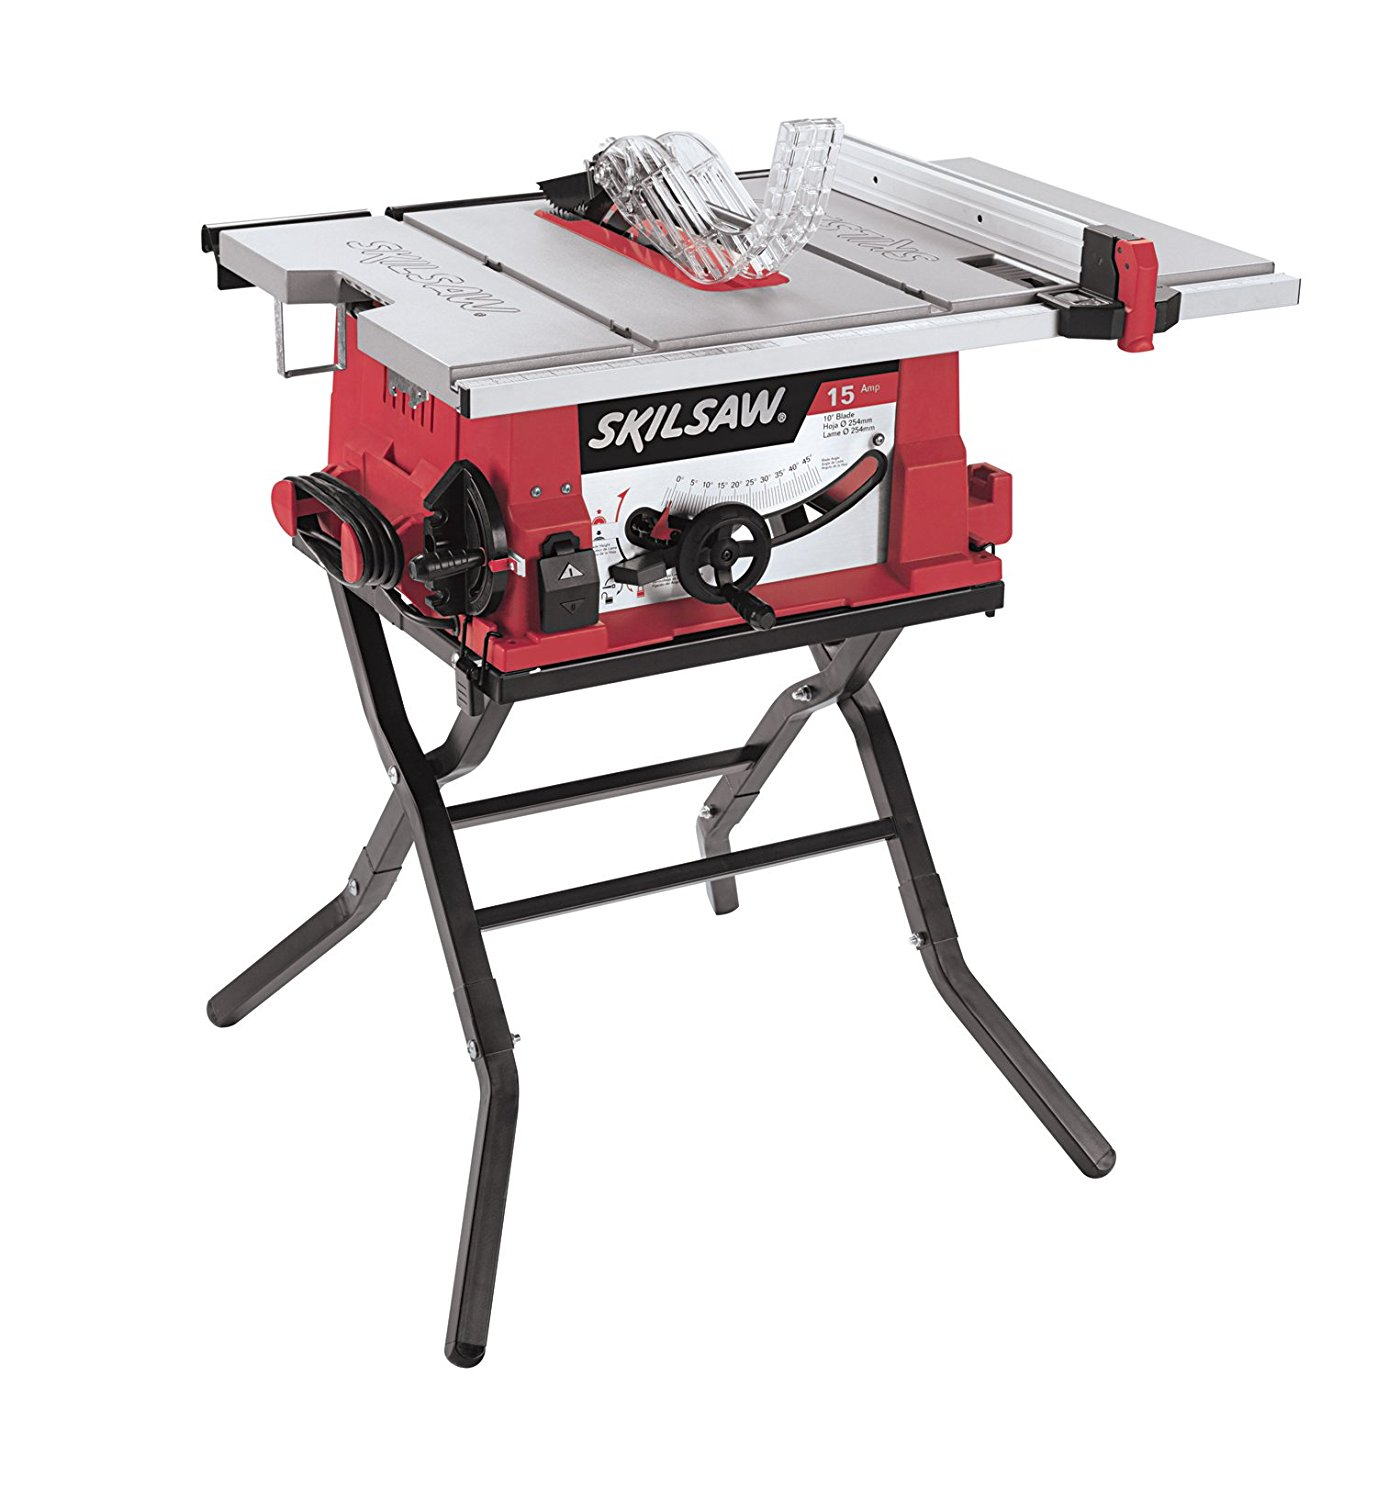 best hybrid table saw under $1000